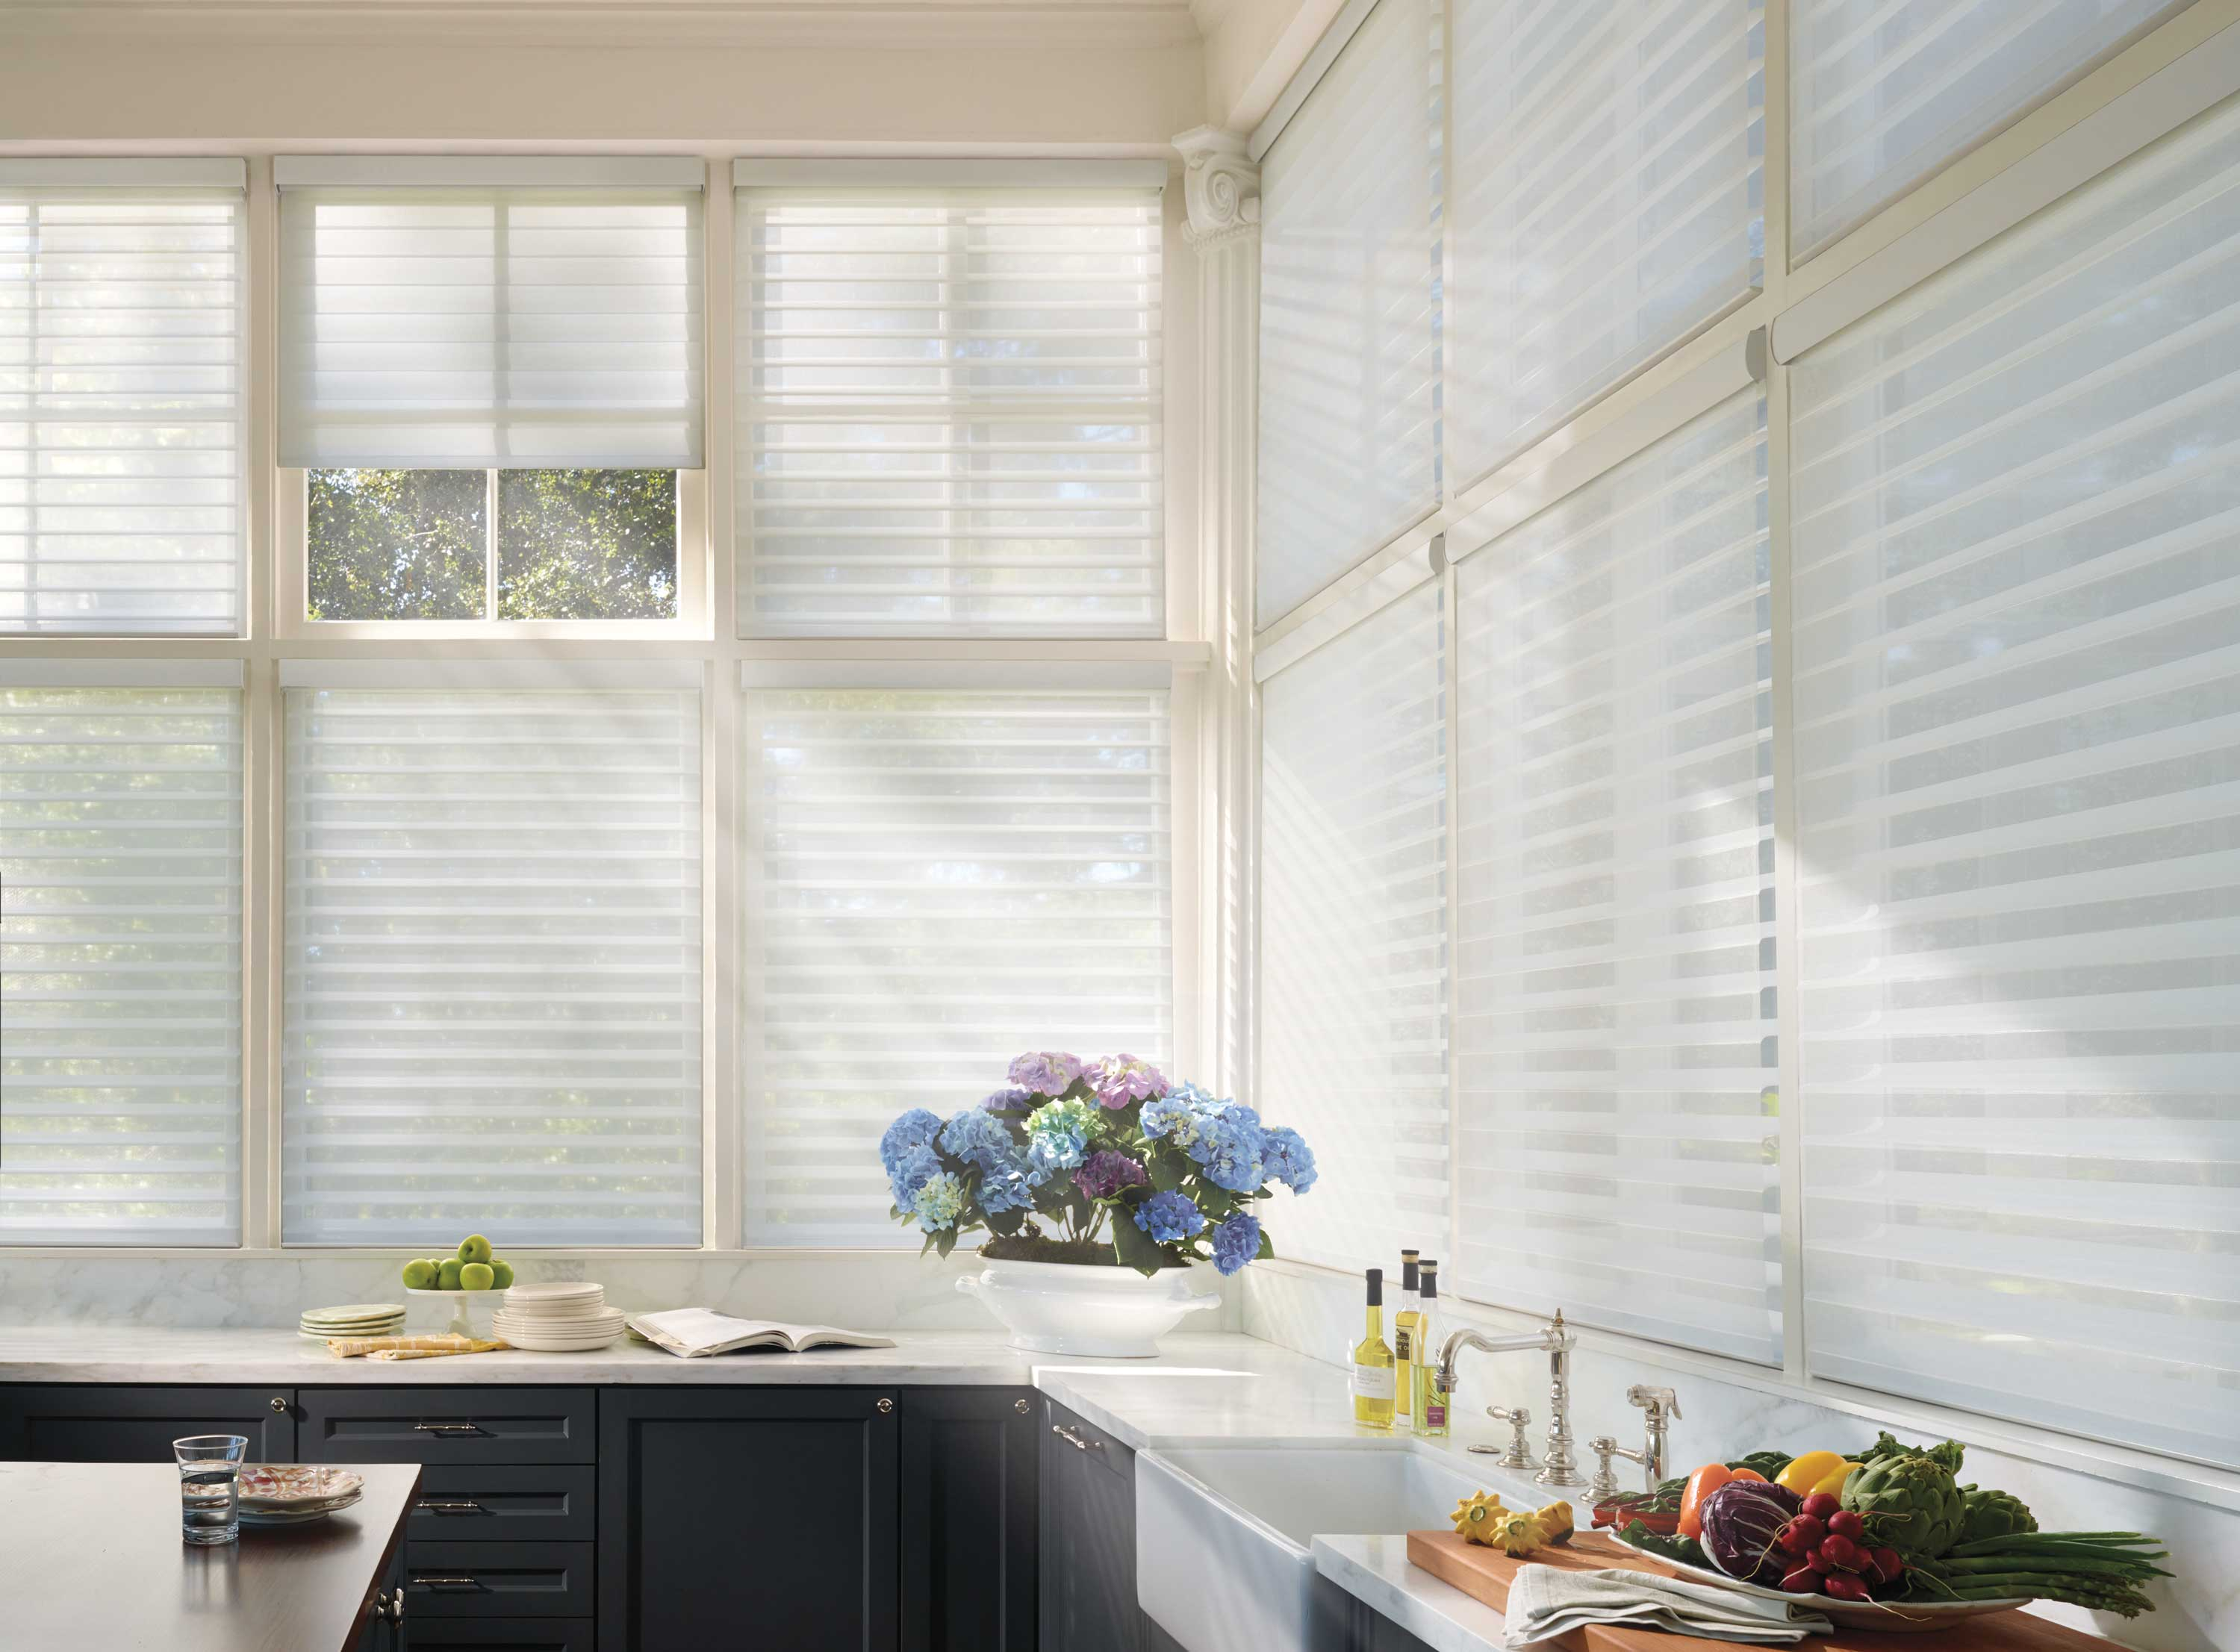 your design window living idea windows about cellular blinds client wide extra large things big to room for wants eric know back